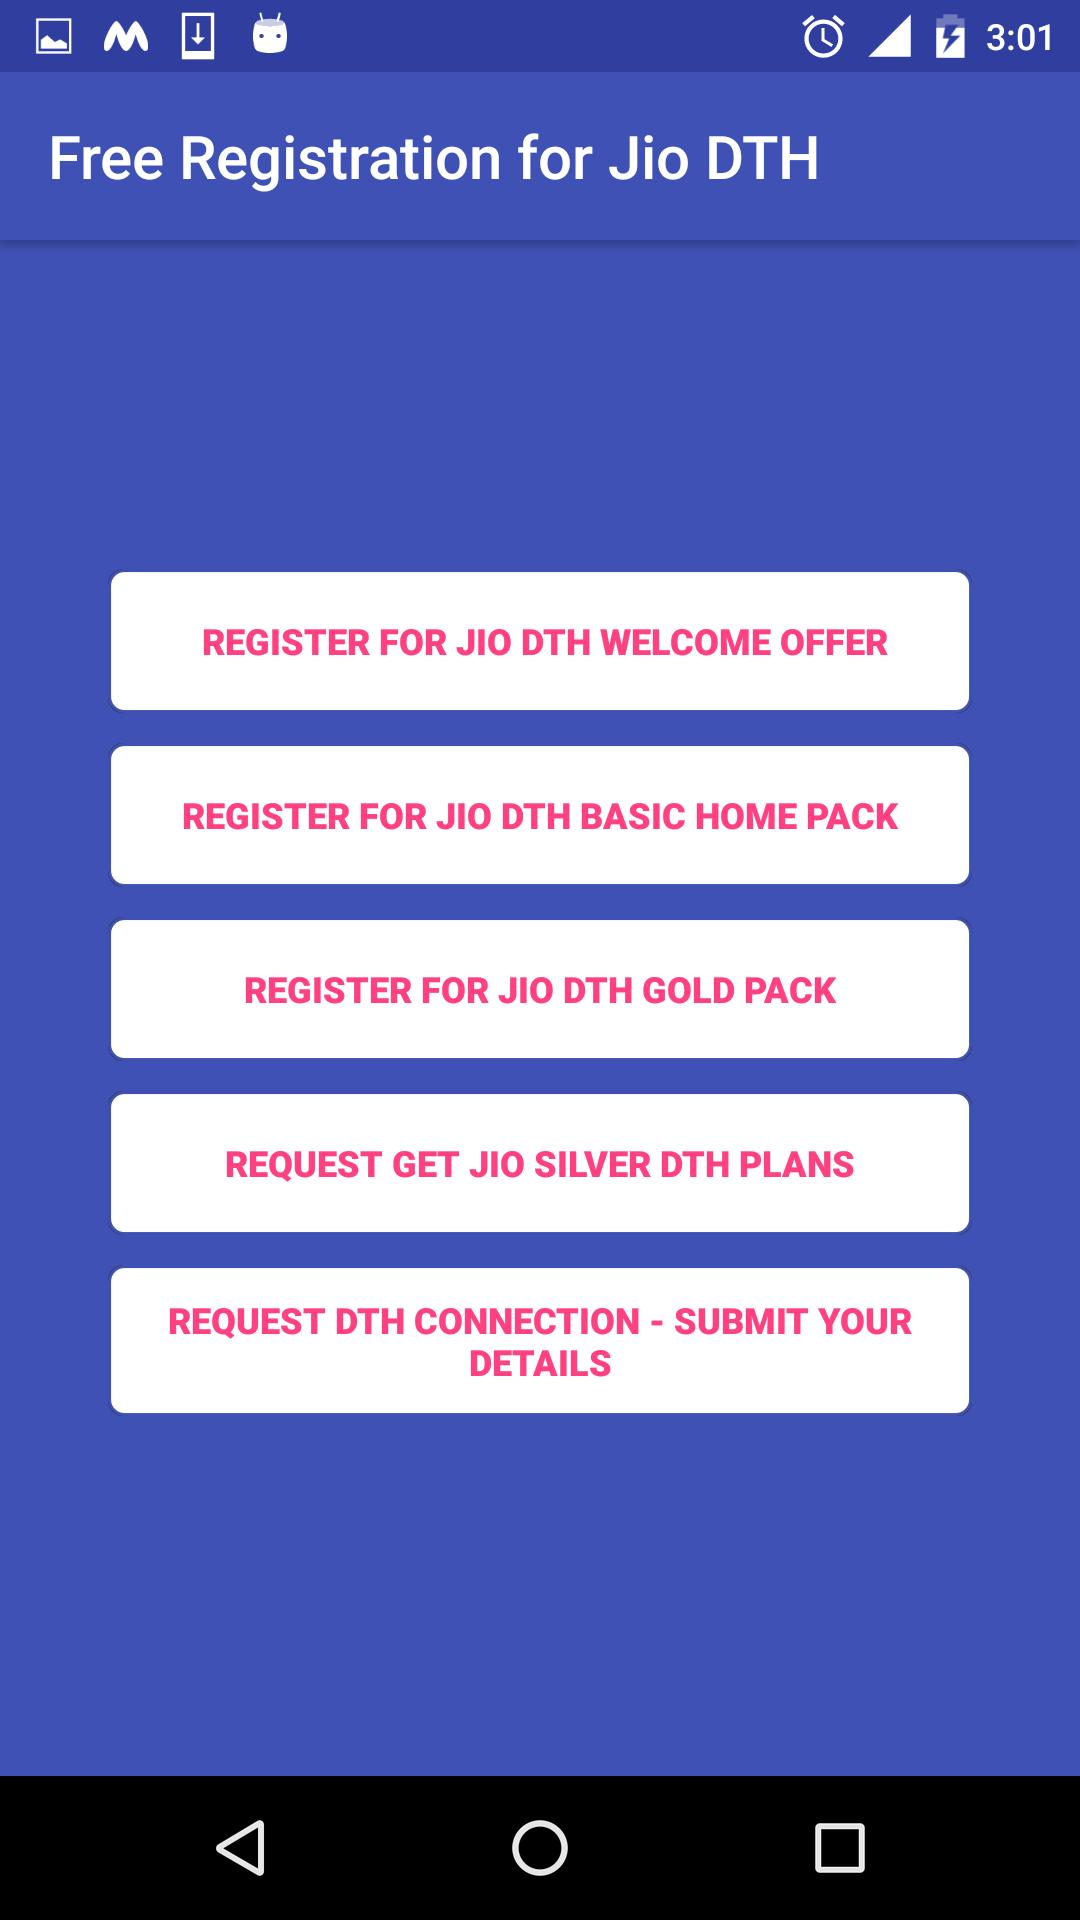 Free Registration for Jio DTH Prank for Android - APK Download